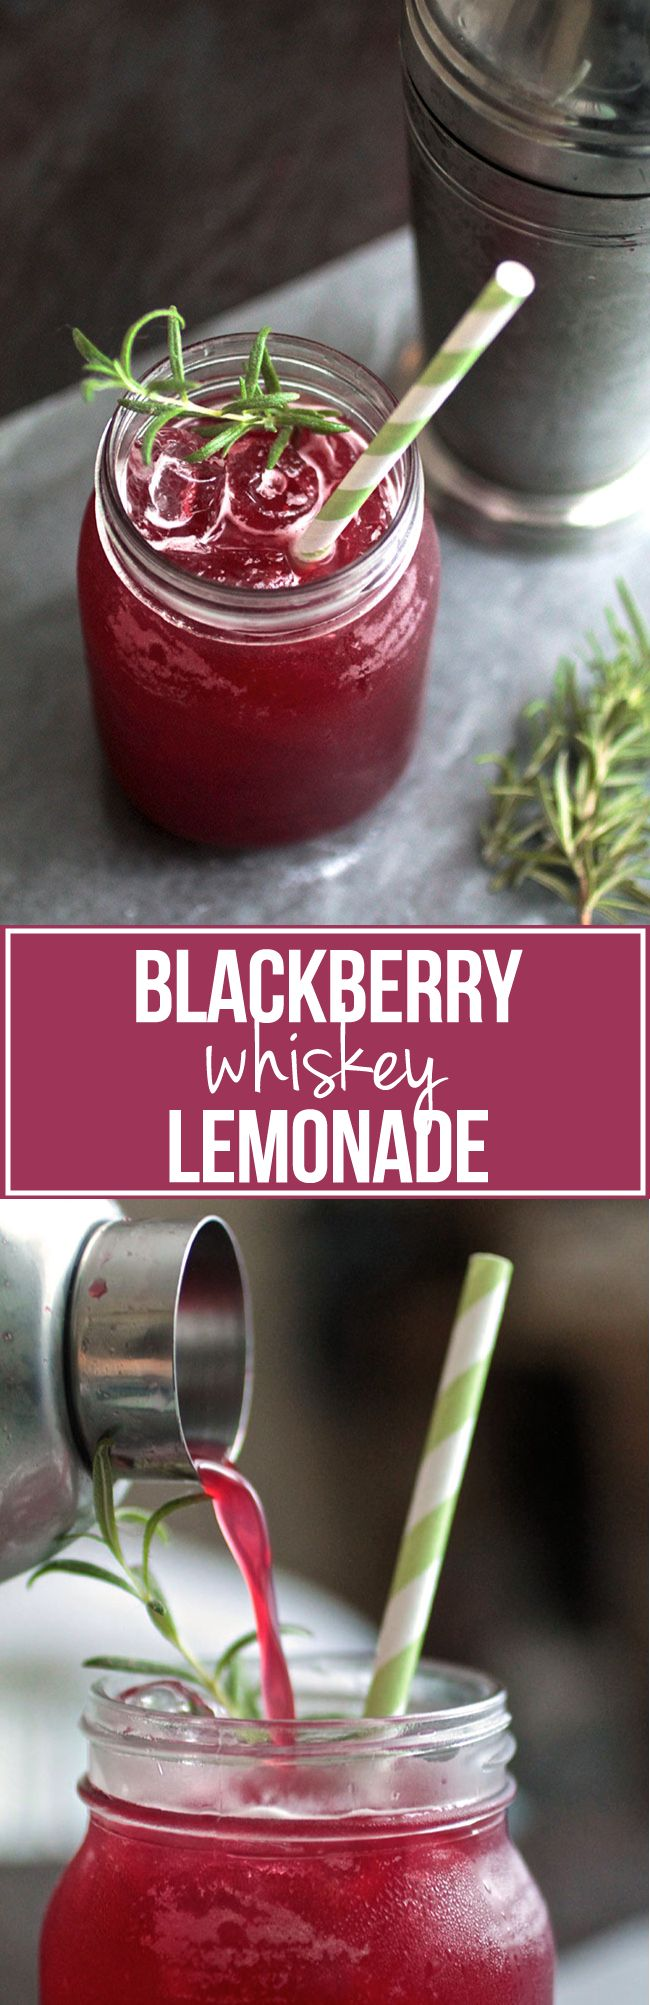 Blackberry Whiskey Lemonade   This refreshing blackberry cocktail is perfect for summertime! A sweet and refreshing whiskey cocktail drink with sweet blackberries and a hint of earthiness from fresh rosemary.